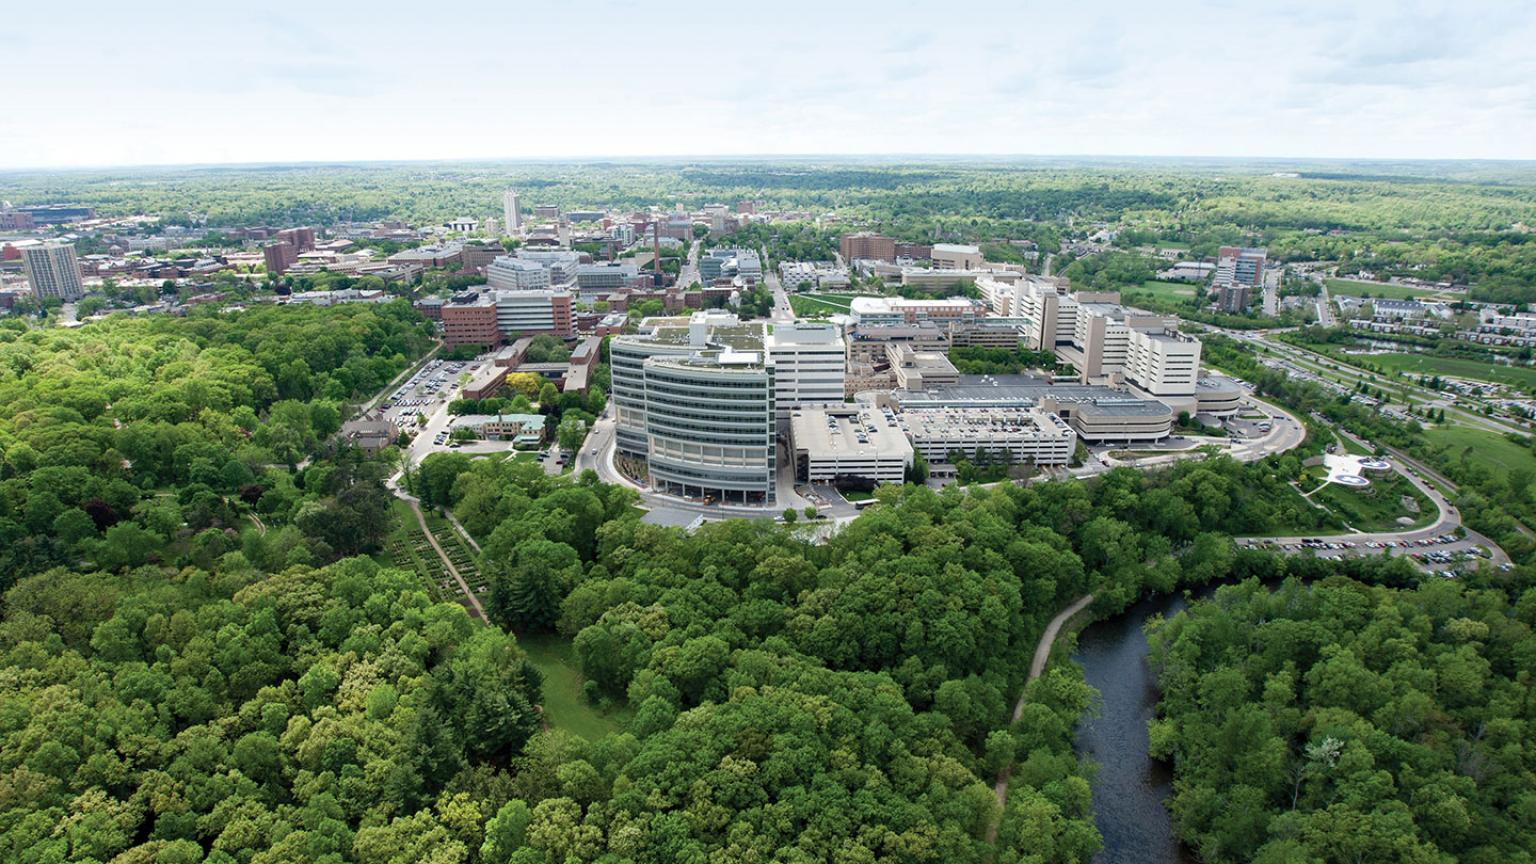 Aerial shot of Children's and Women's hospital buildings with green trees and Huron River in the foreground